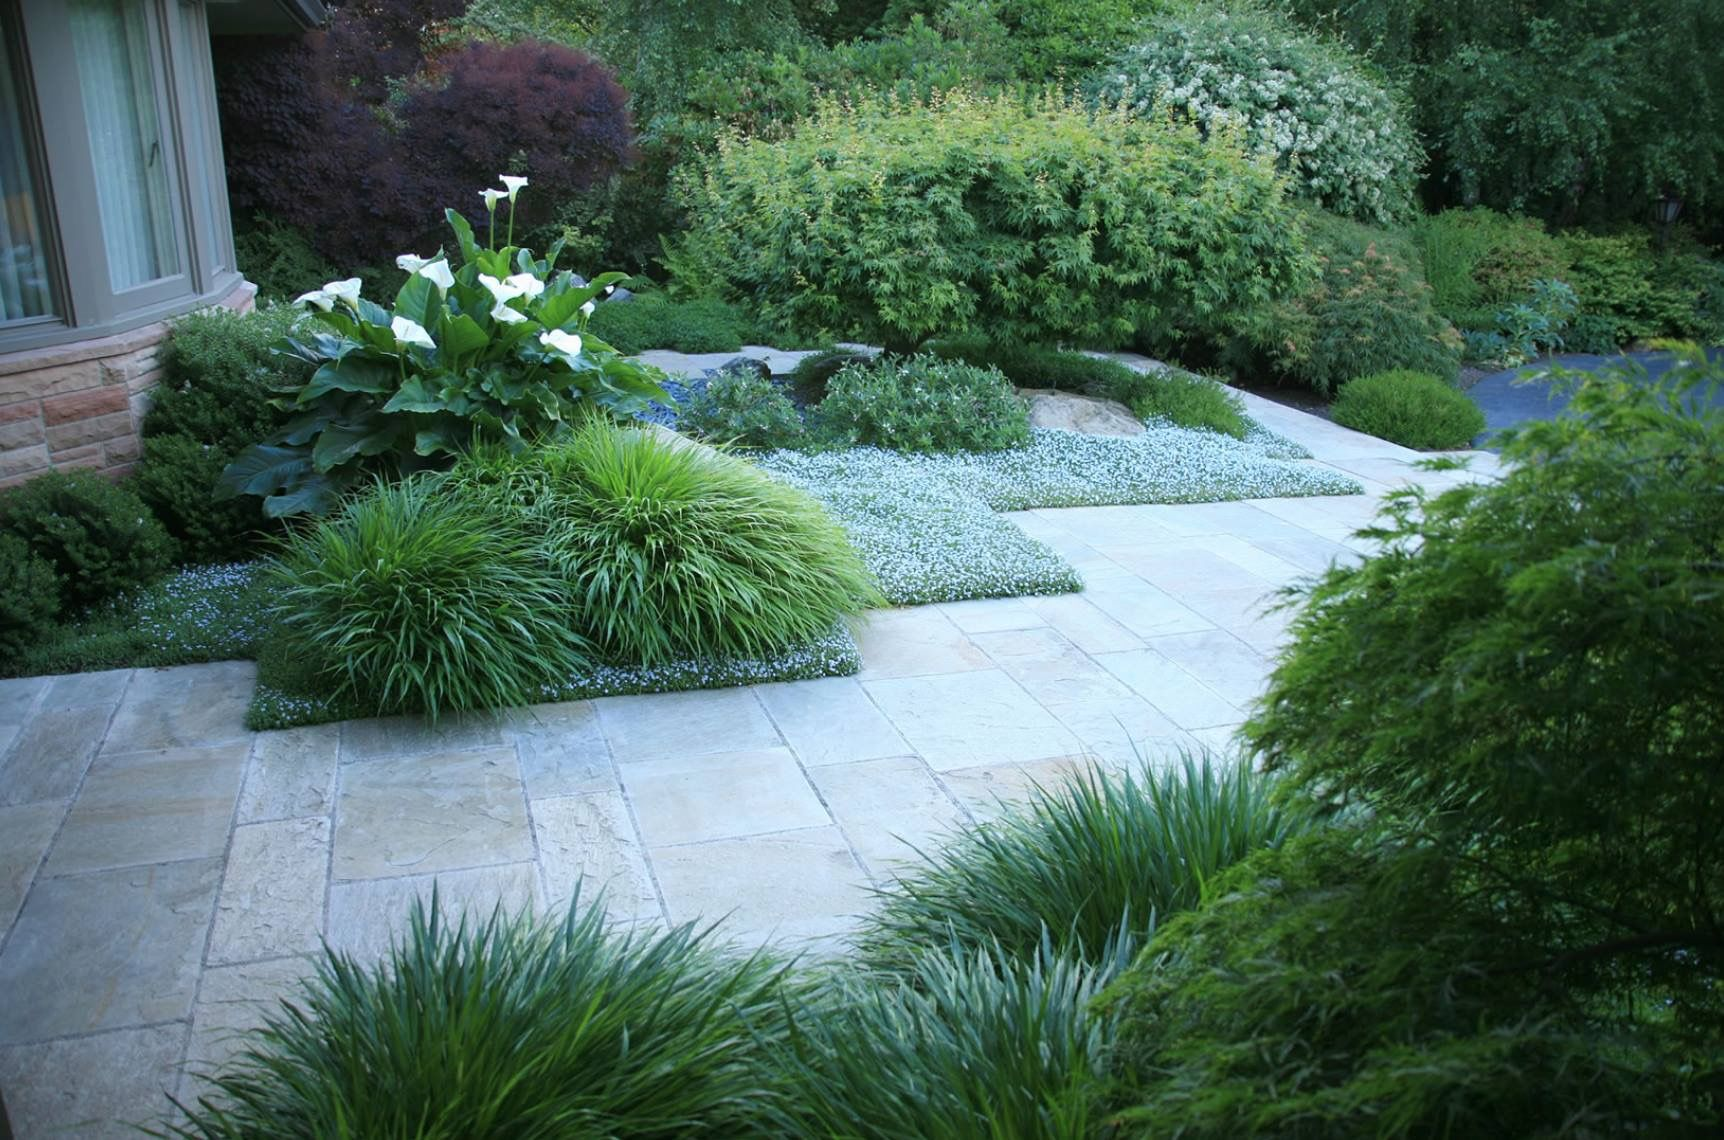 Pin by Art.Arch. A.R.I on Backyard landscaping | Sloped garden